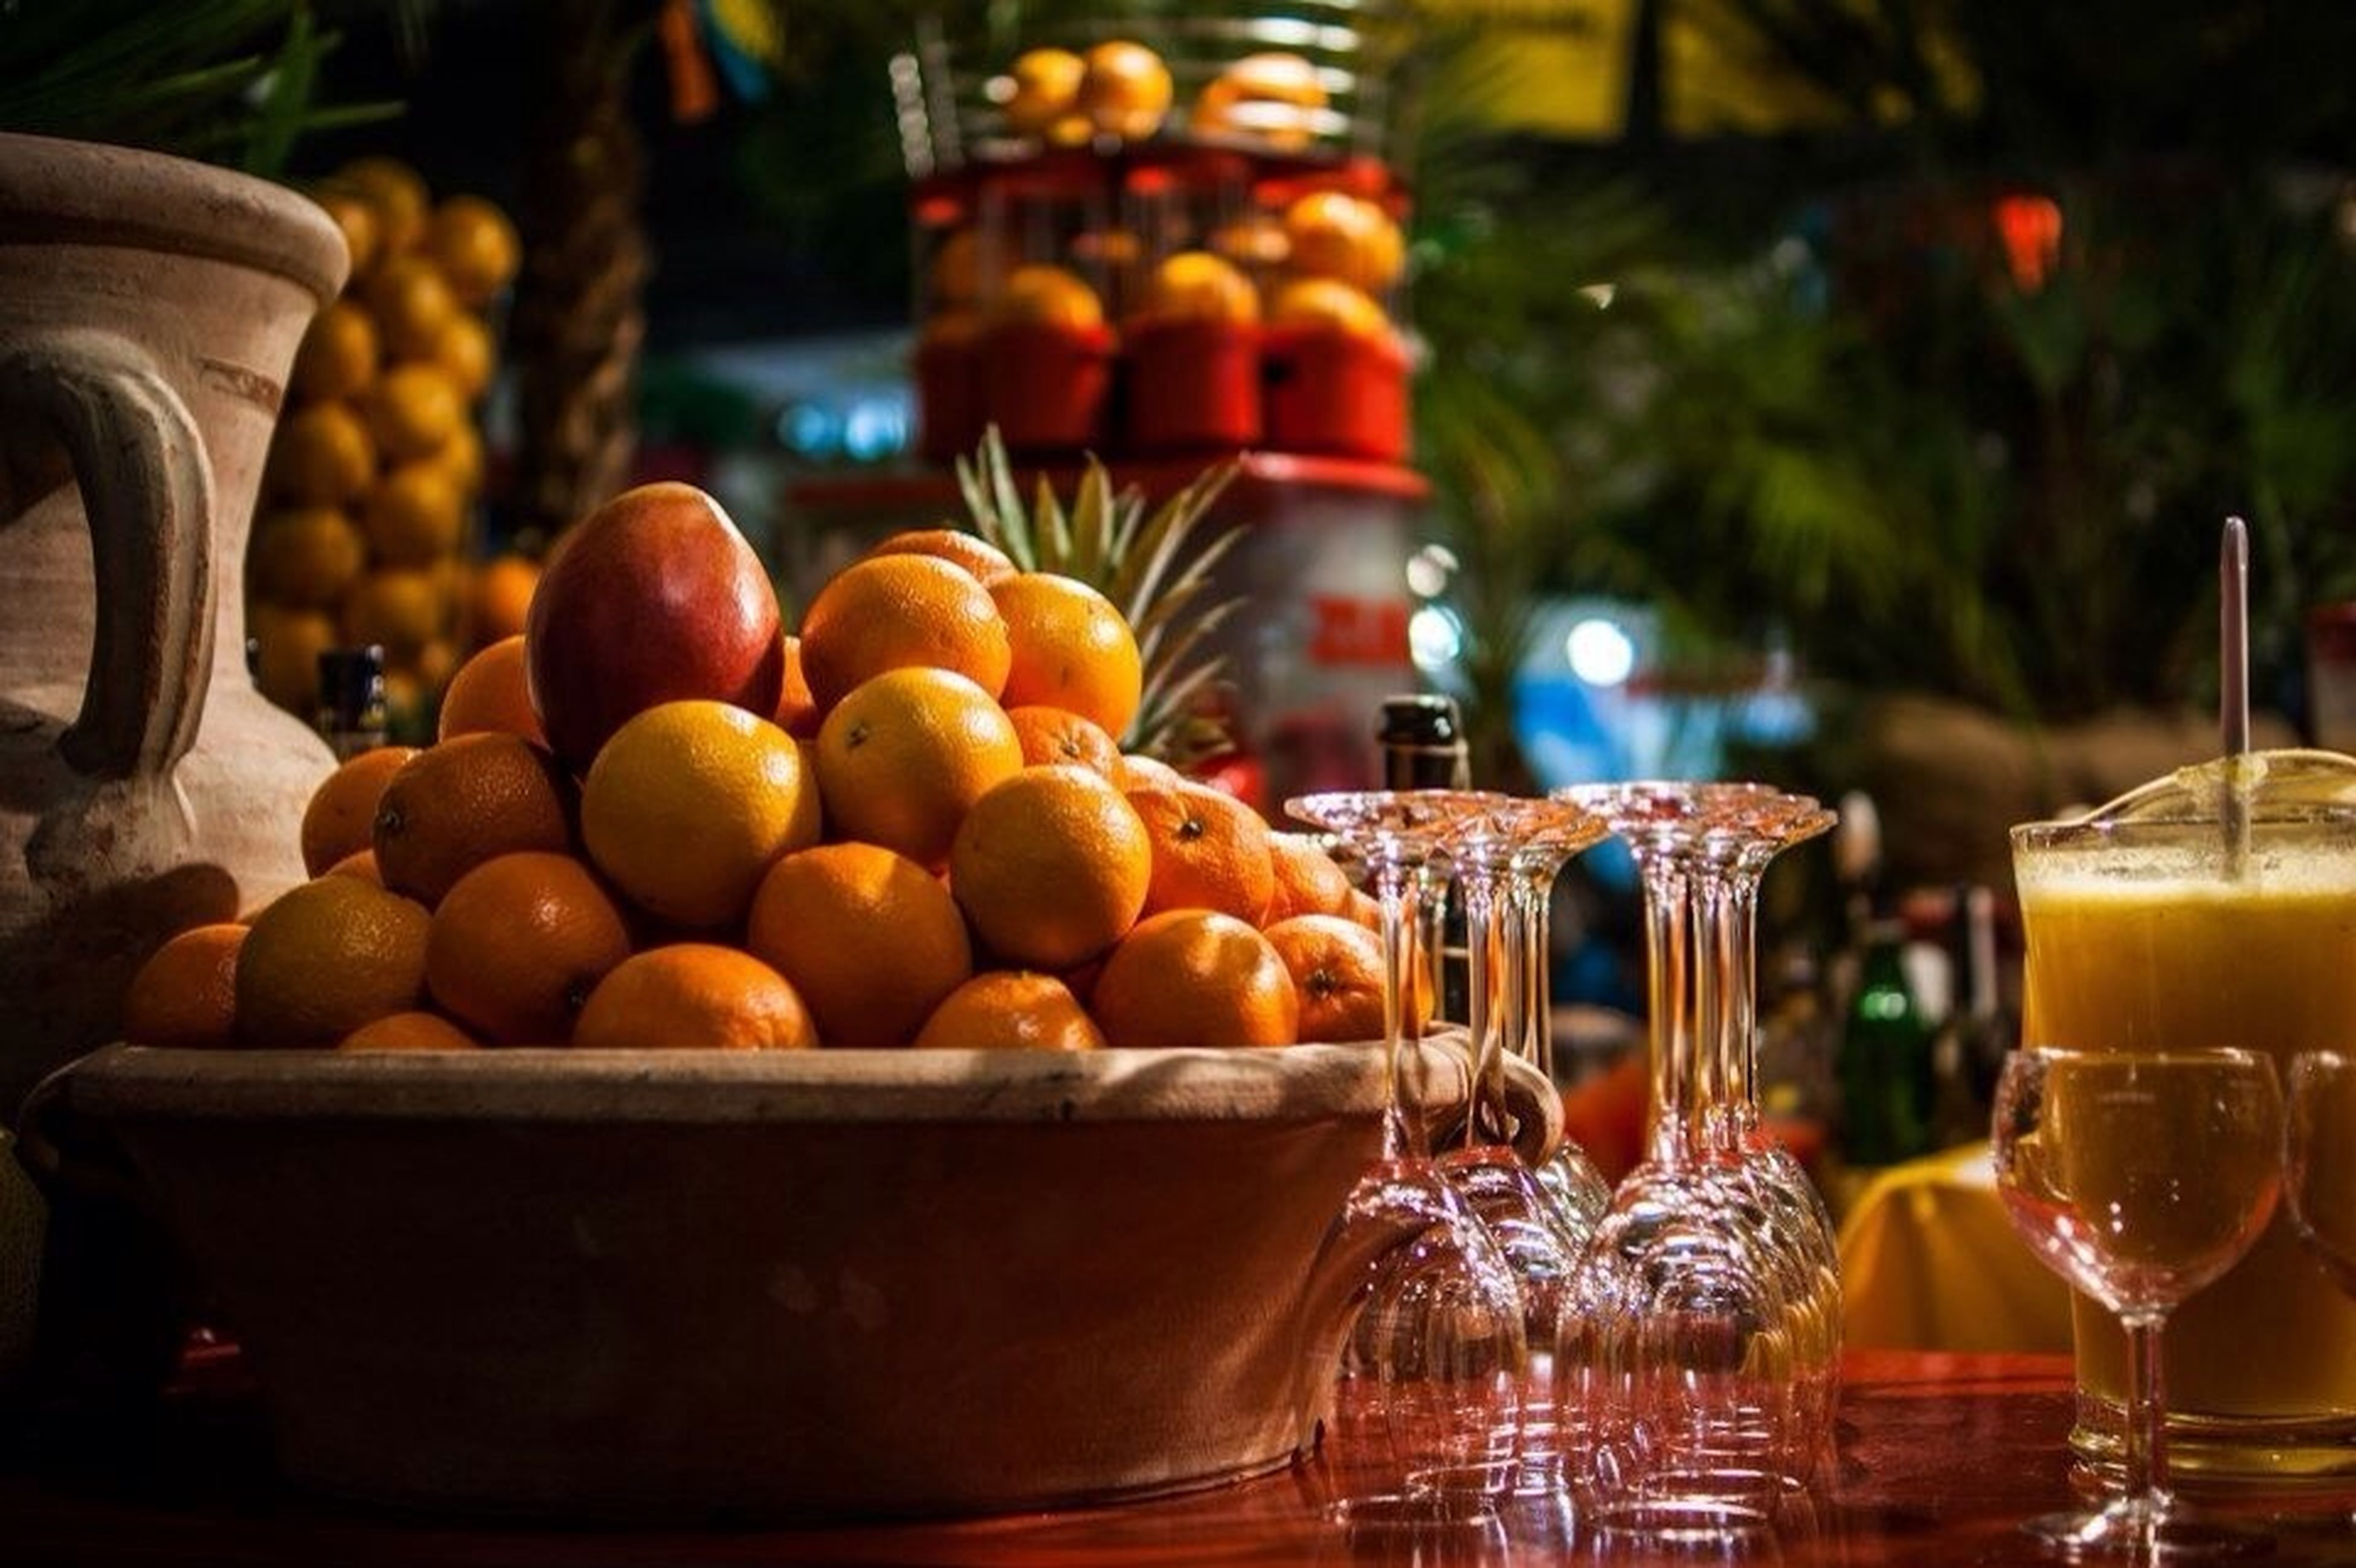 food and drink, freshness, food, healthy eating, fruit, still life, indoors, table, focus on foreground, close-up, large group of objects, drink, glass - material, abundance, refreshment, selective focus, orange - fruit, container, jar, no people